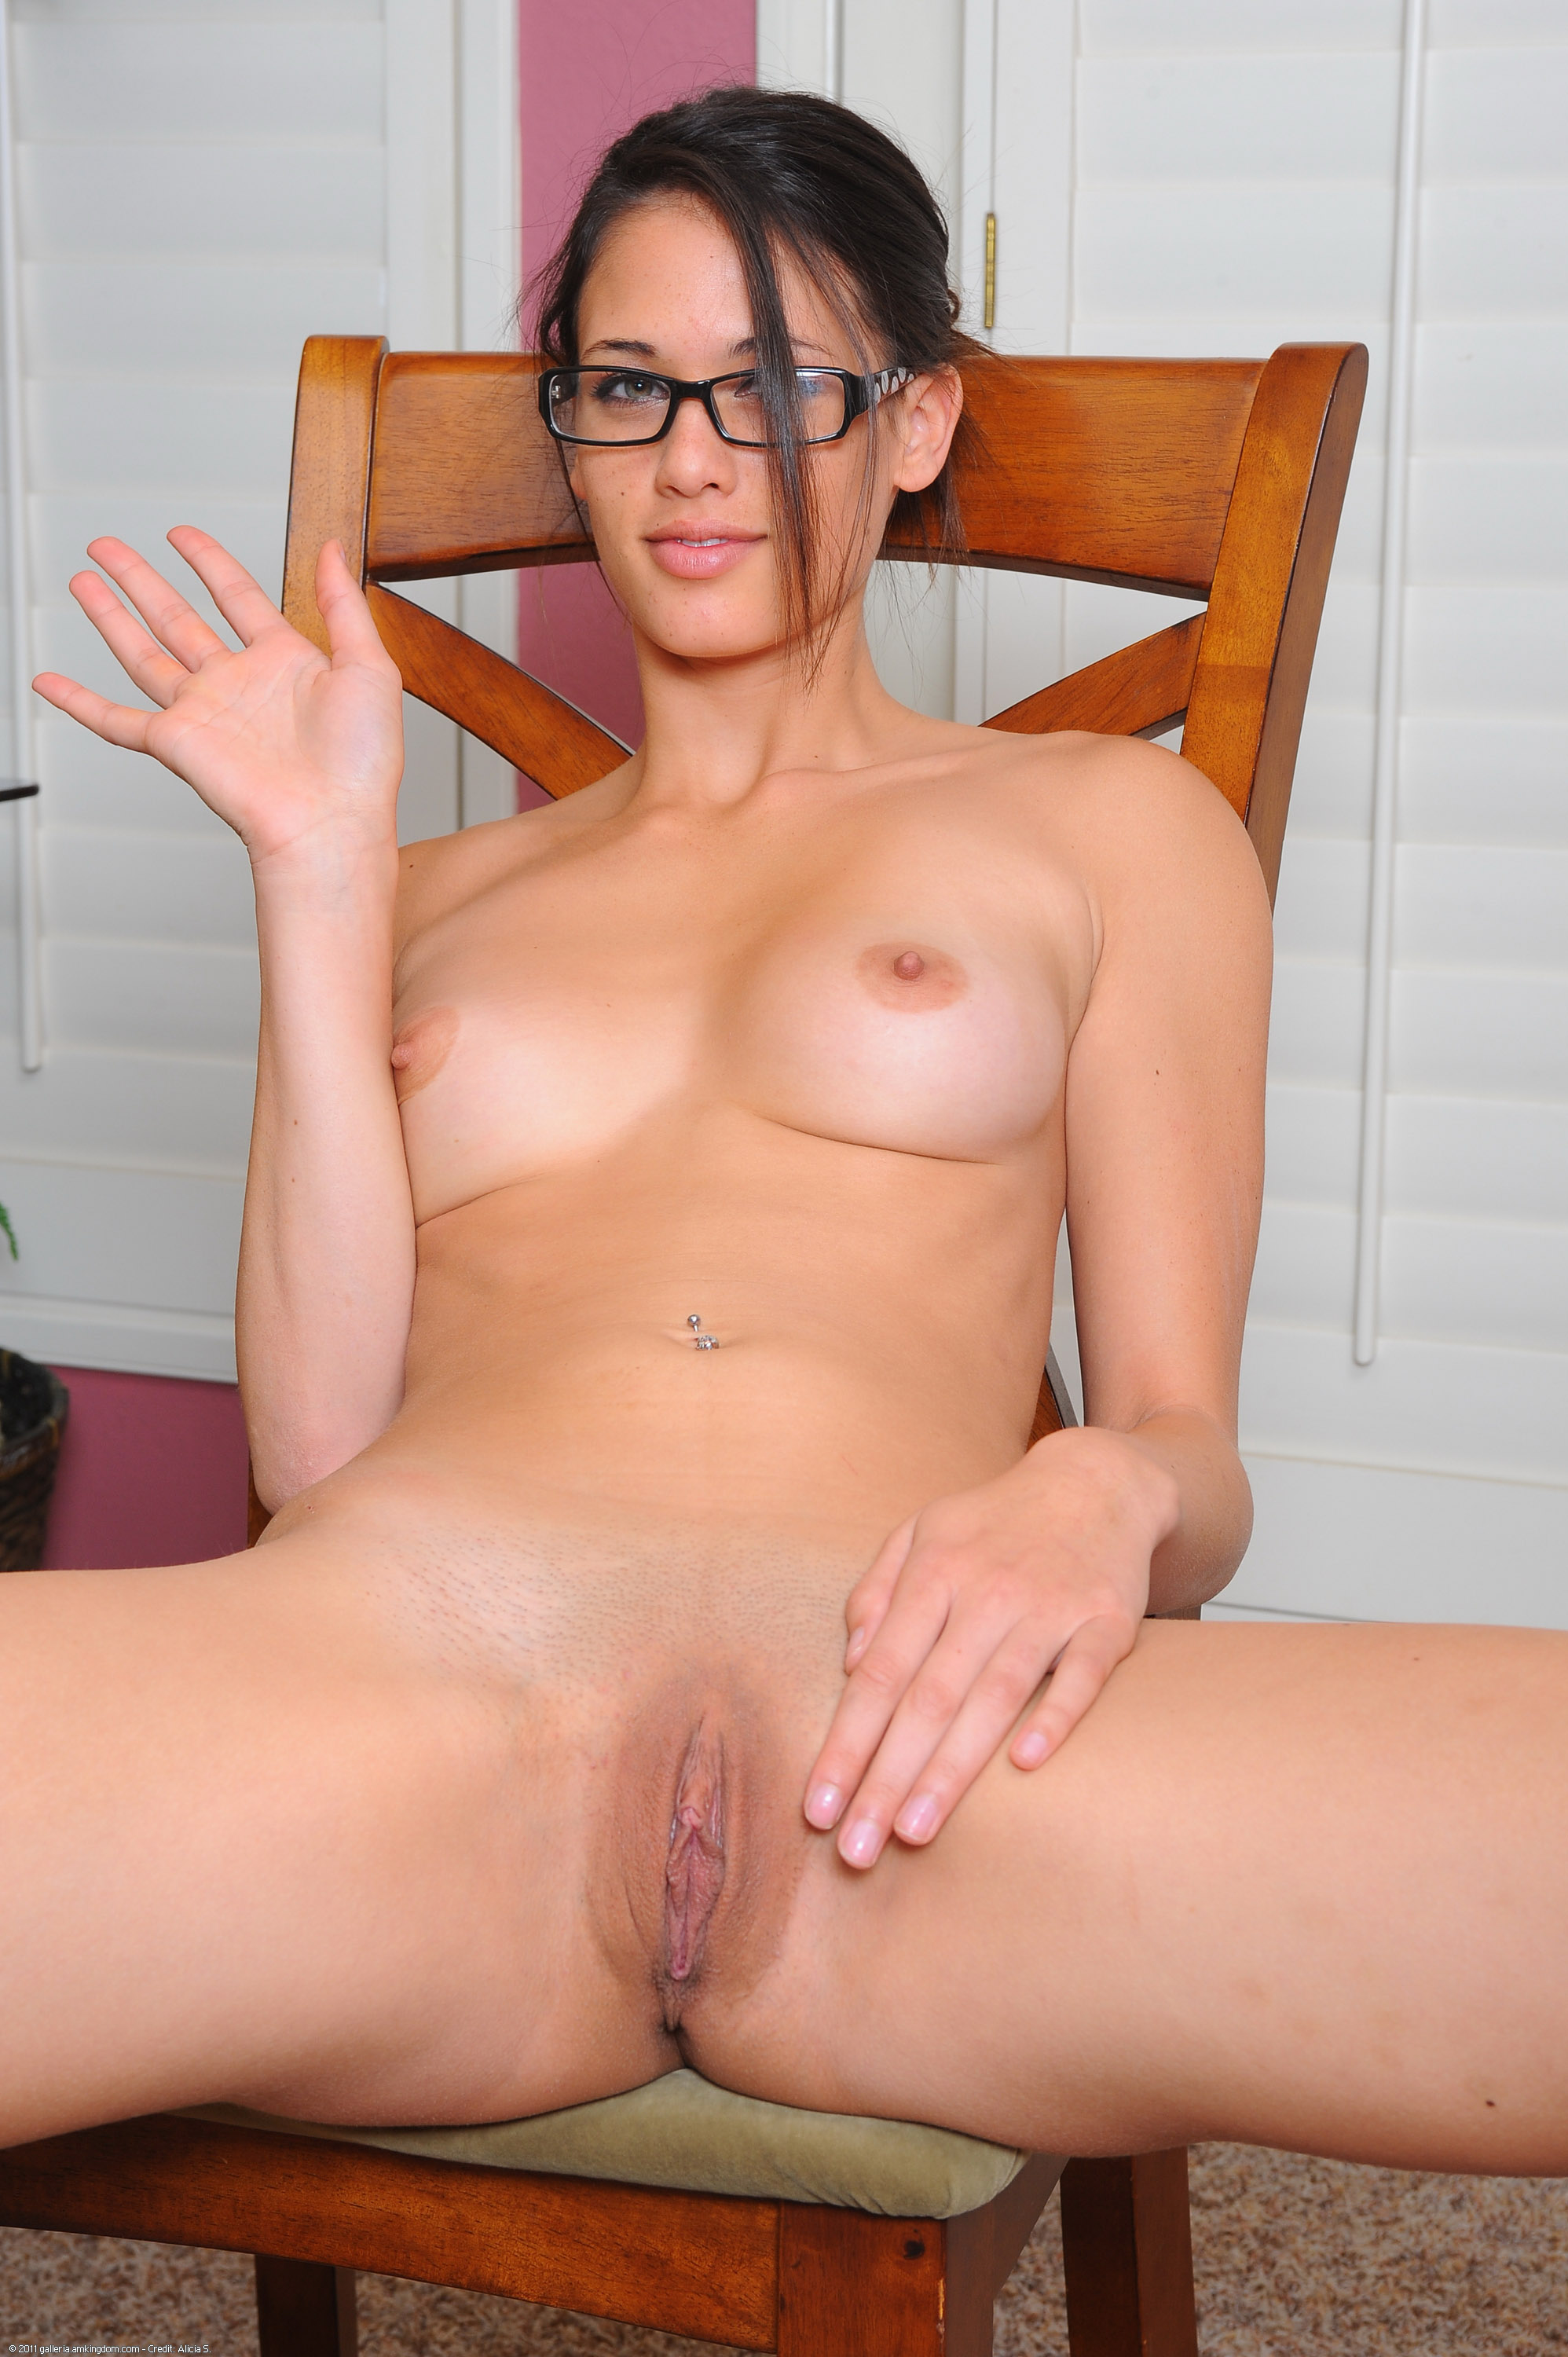 nude-girls-in-glasses-boobs-mix-vol2-72